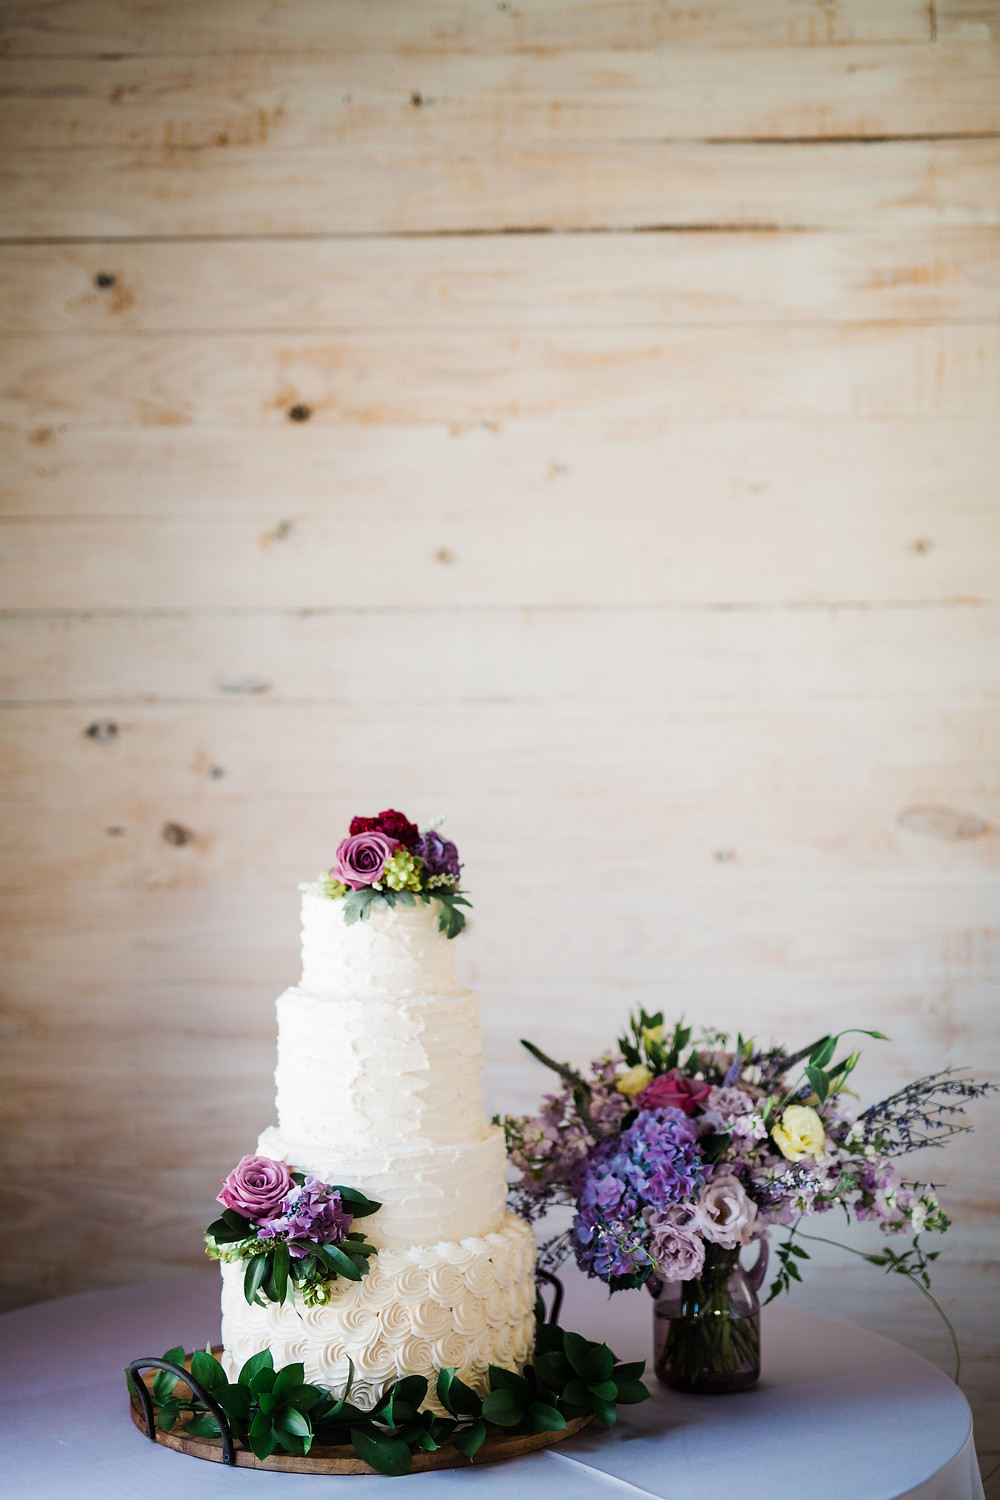 Lauren Crose Photography - Cake by Simply Delicious